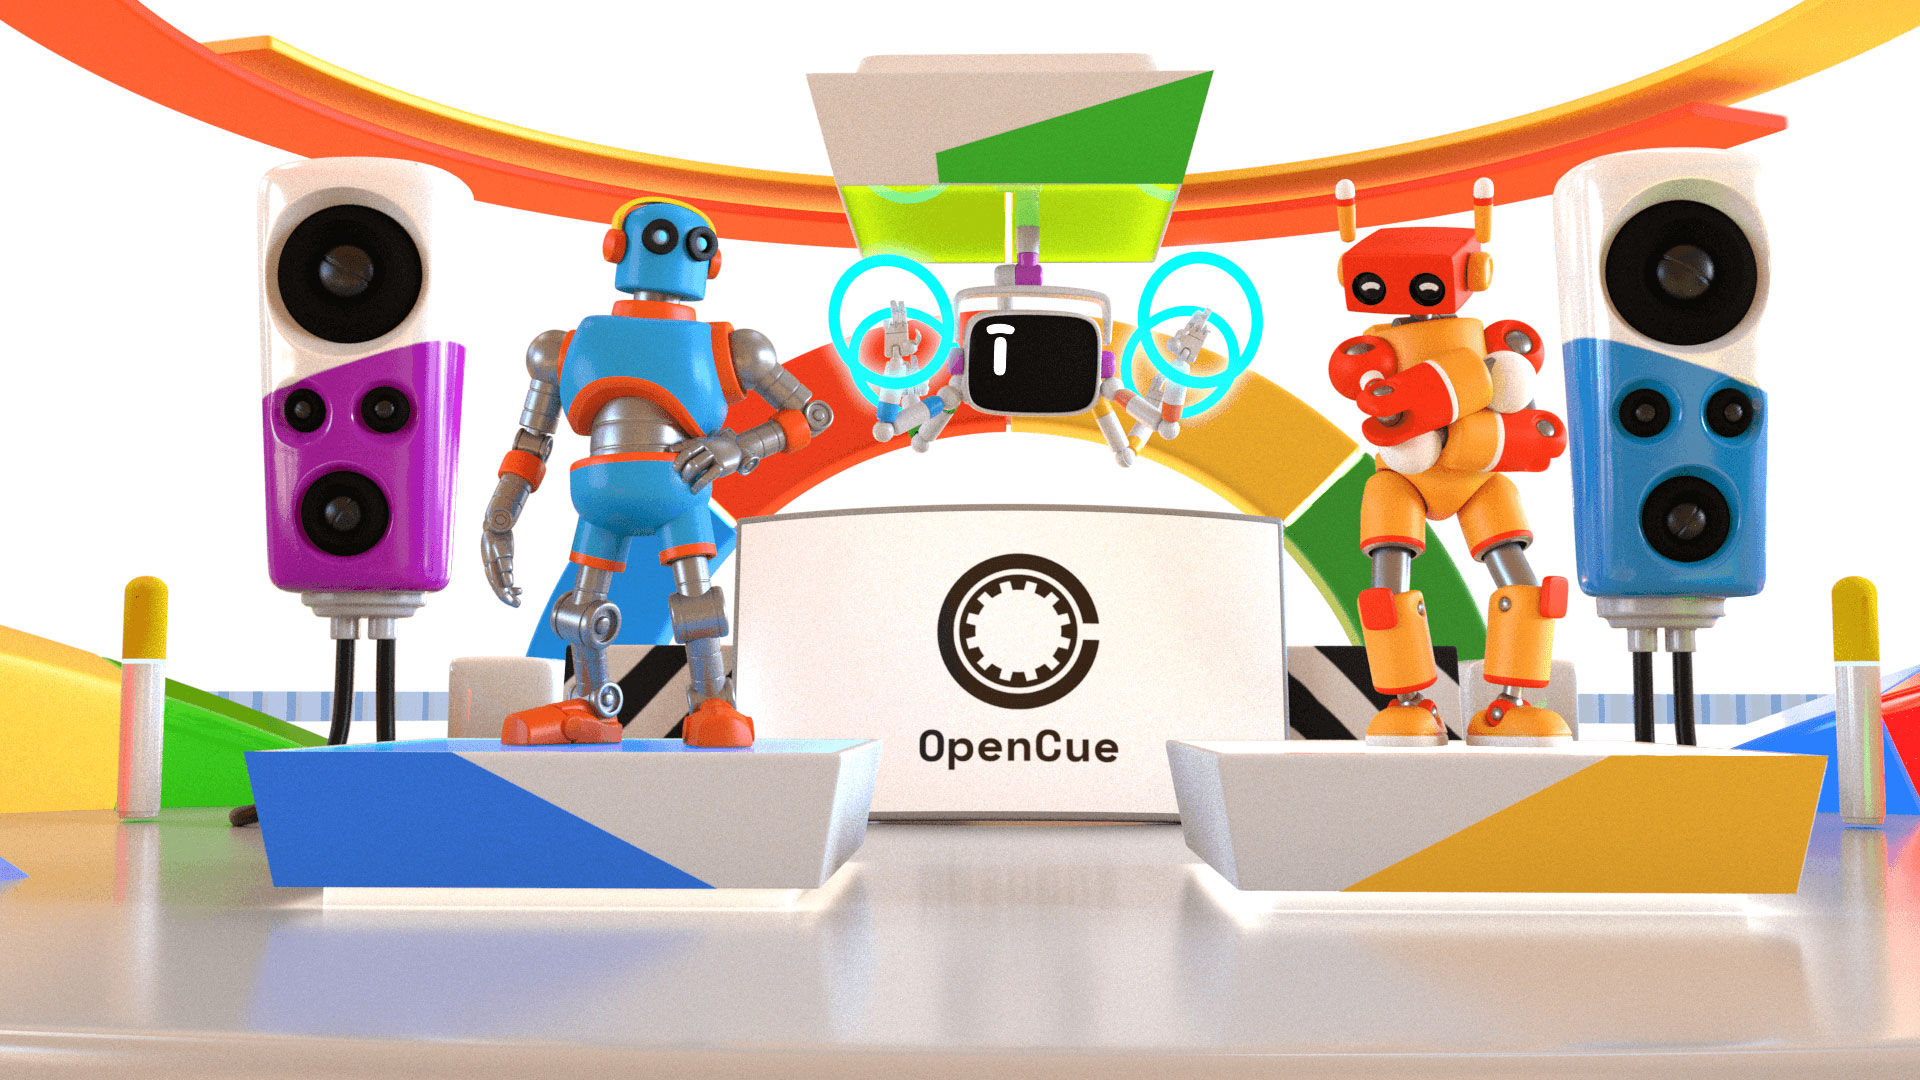 Robots posing with speakers and OpenCue logo